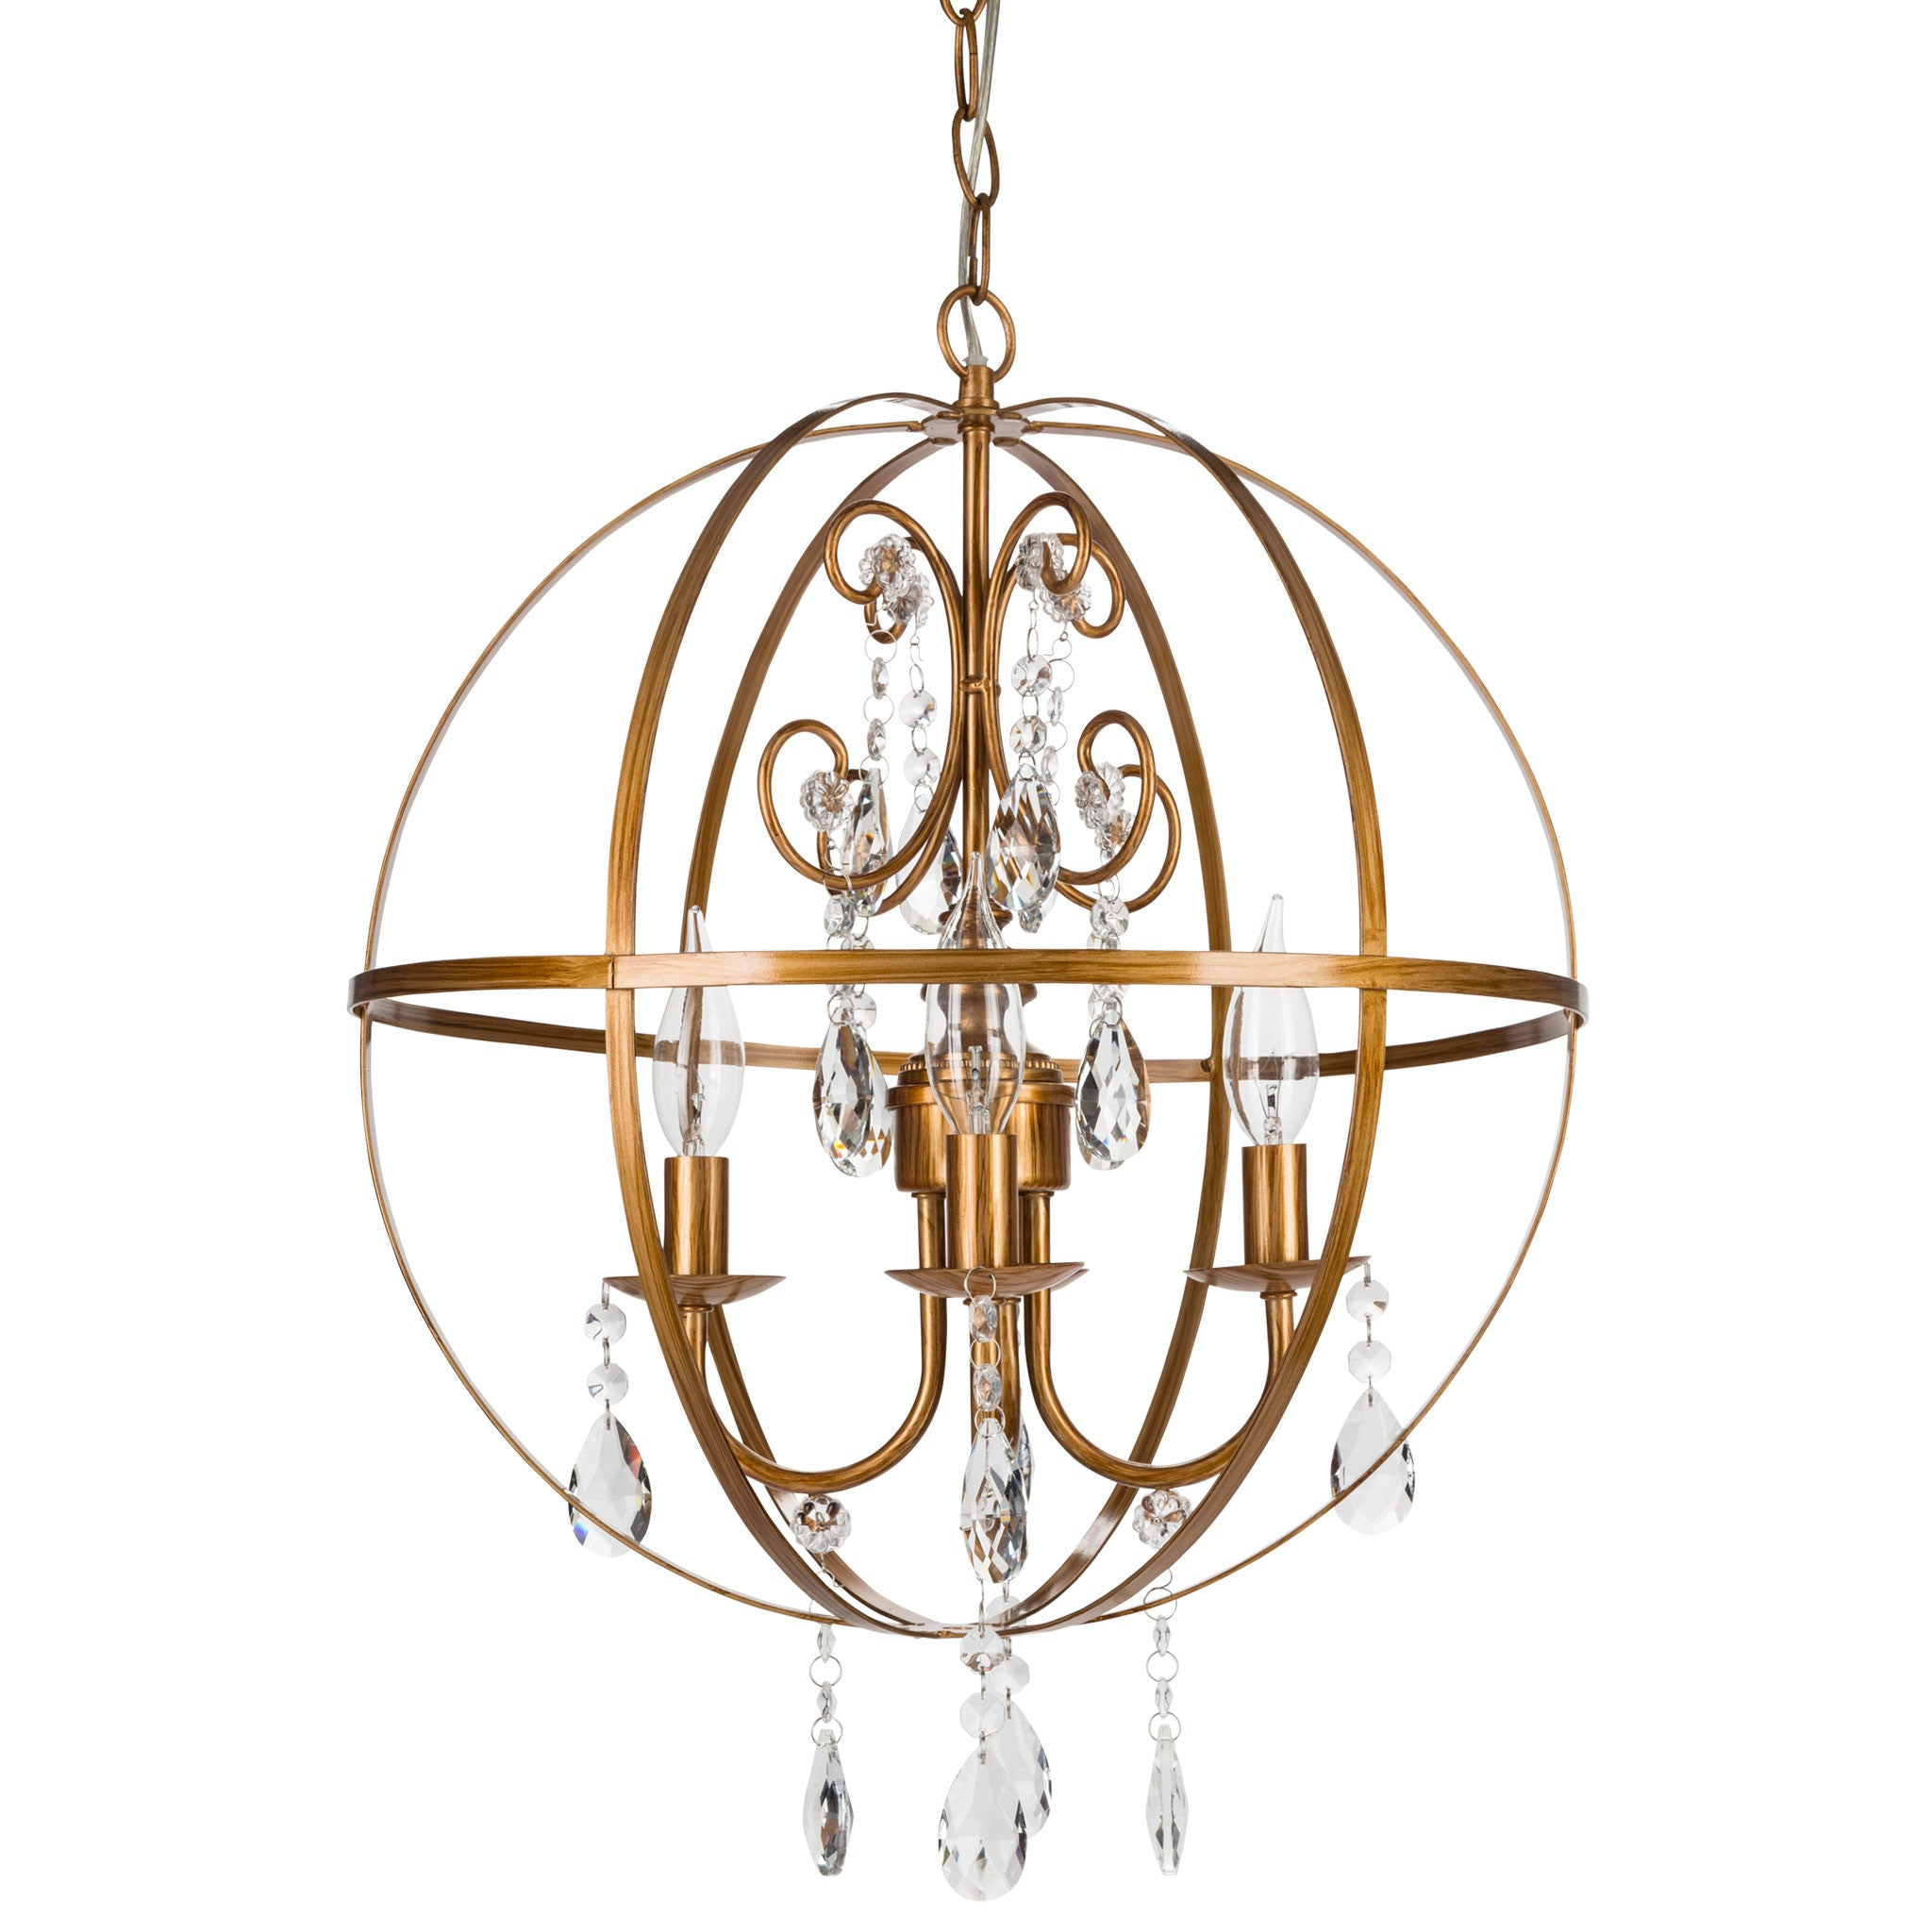 Amalfi Decor 4 Light Contemporary Crystal Orb Plug-In Chandelier (Gold) | Wrought Iron Frame with Glass Crystals